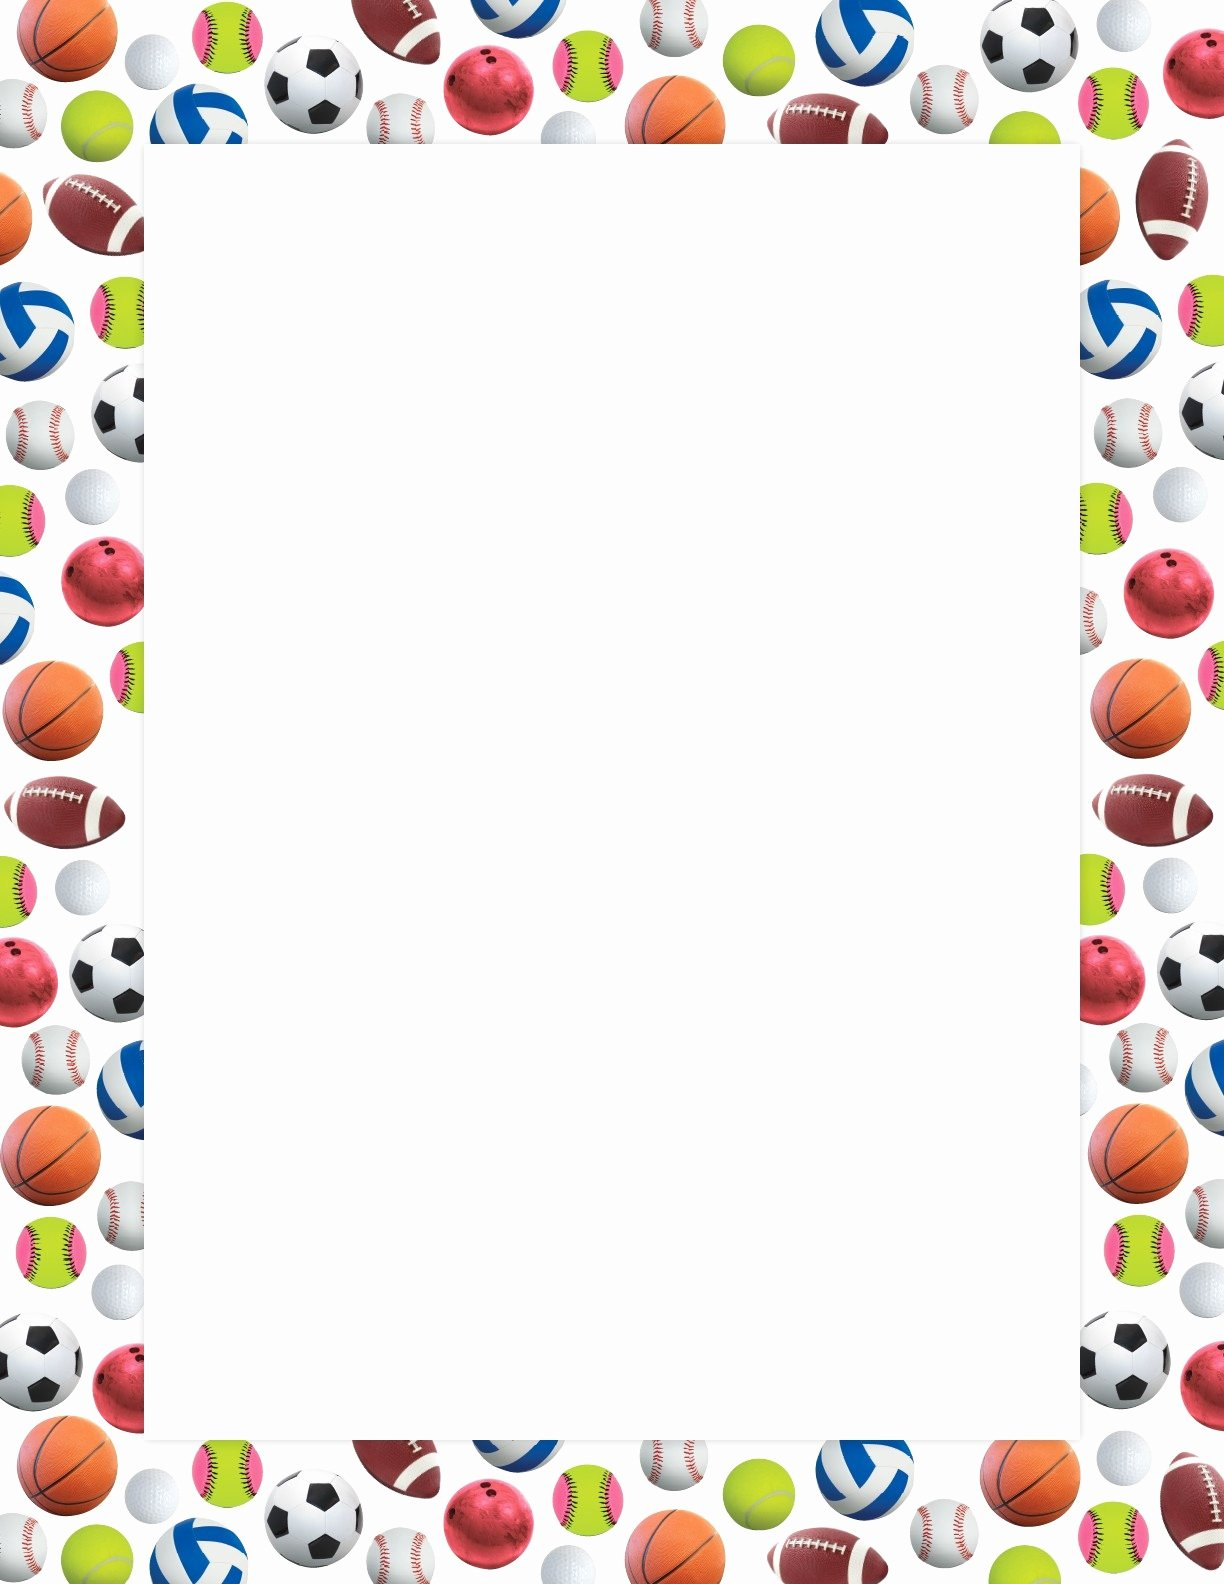 Free Baseball Borders for Word Documents Awesome Sports Ball Border Poster